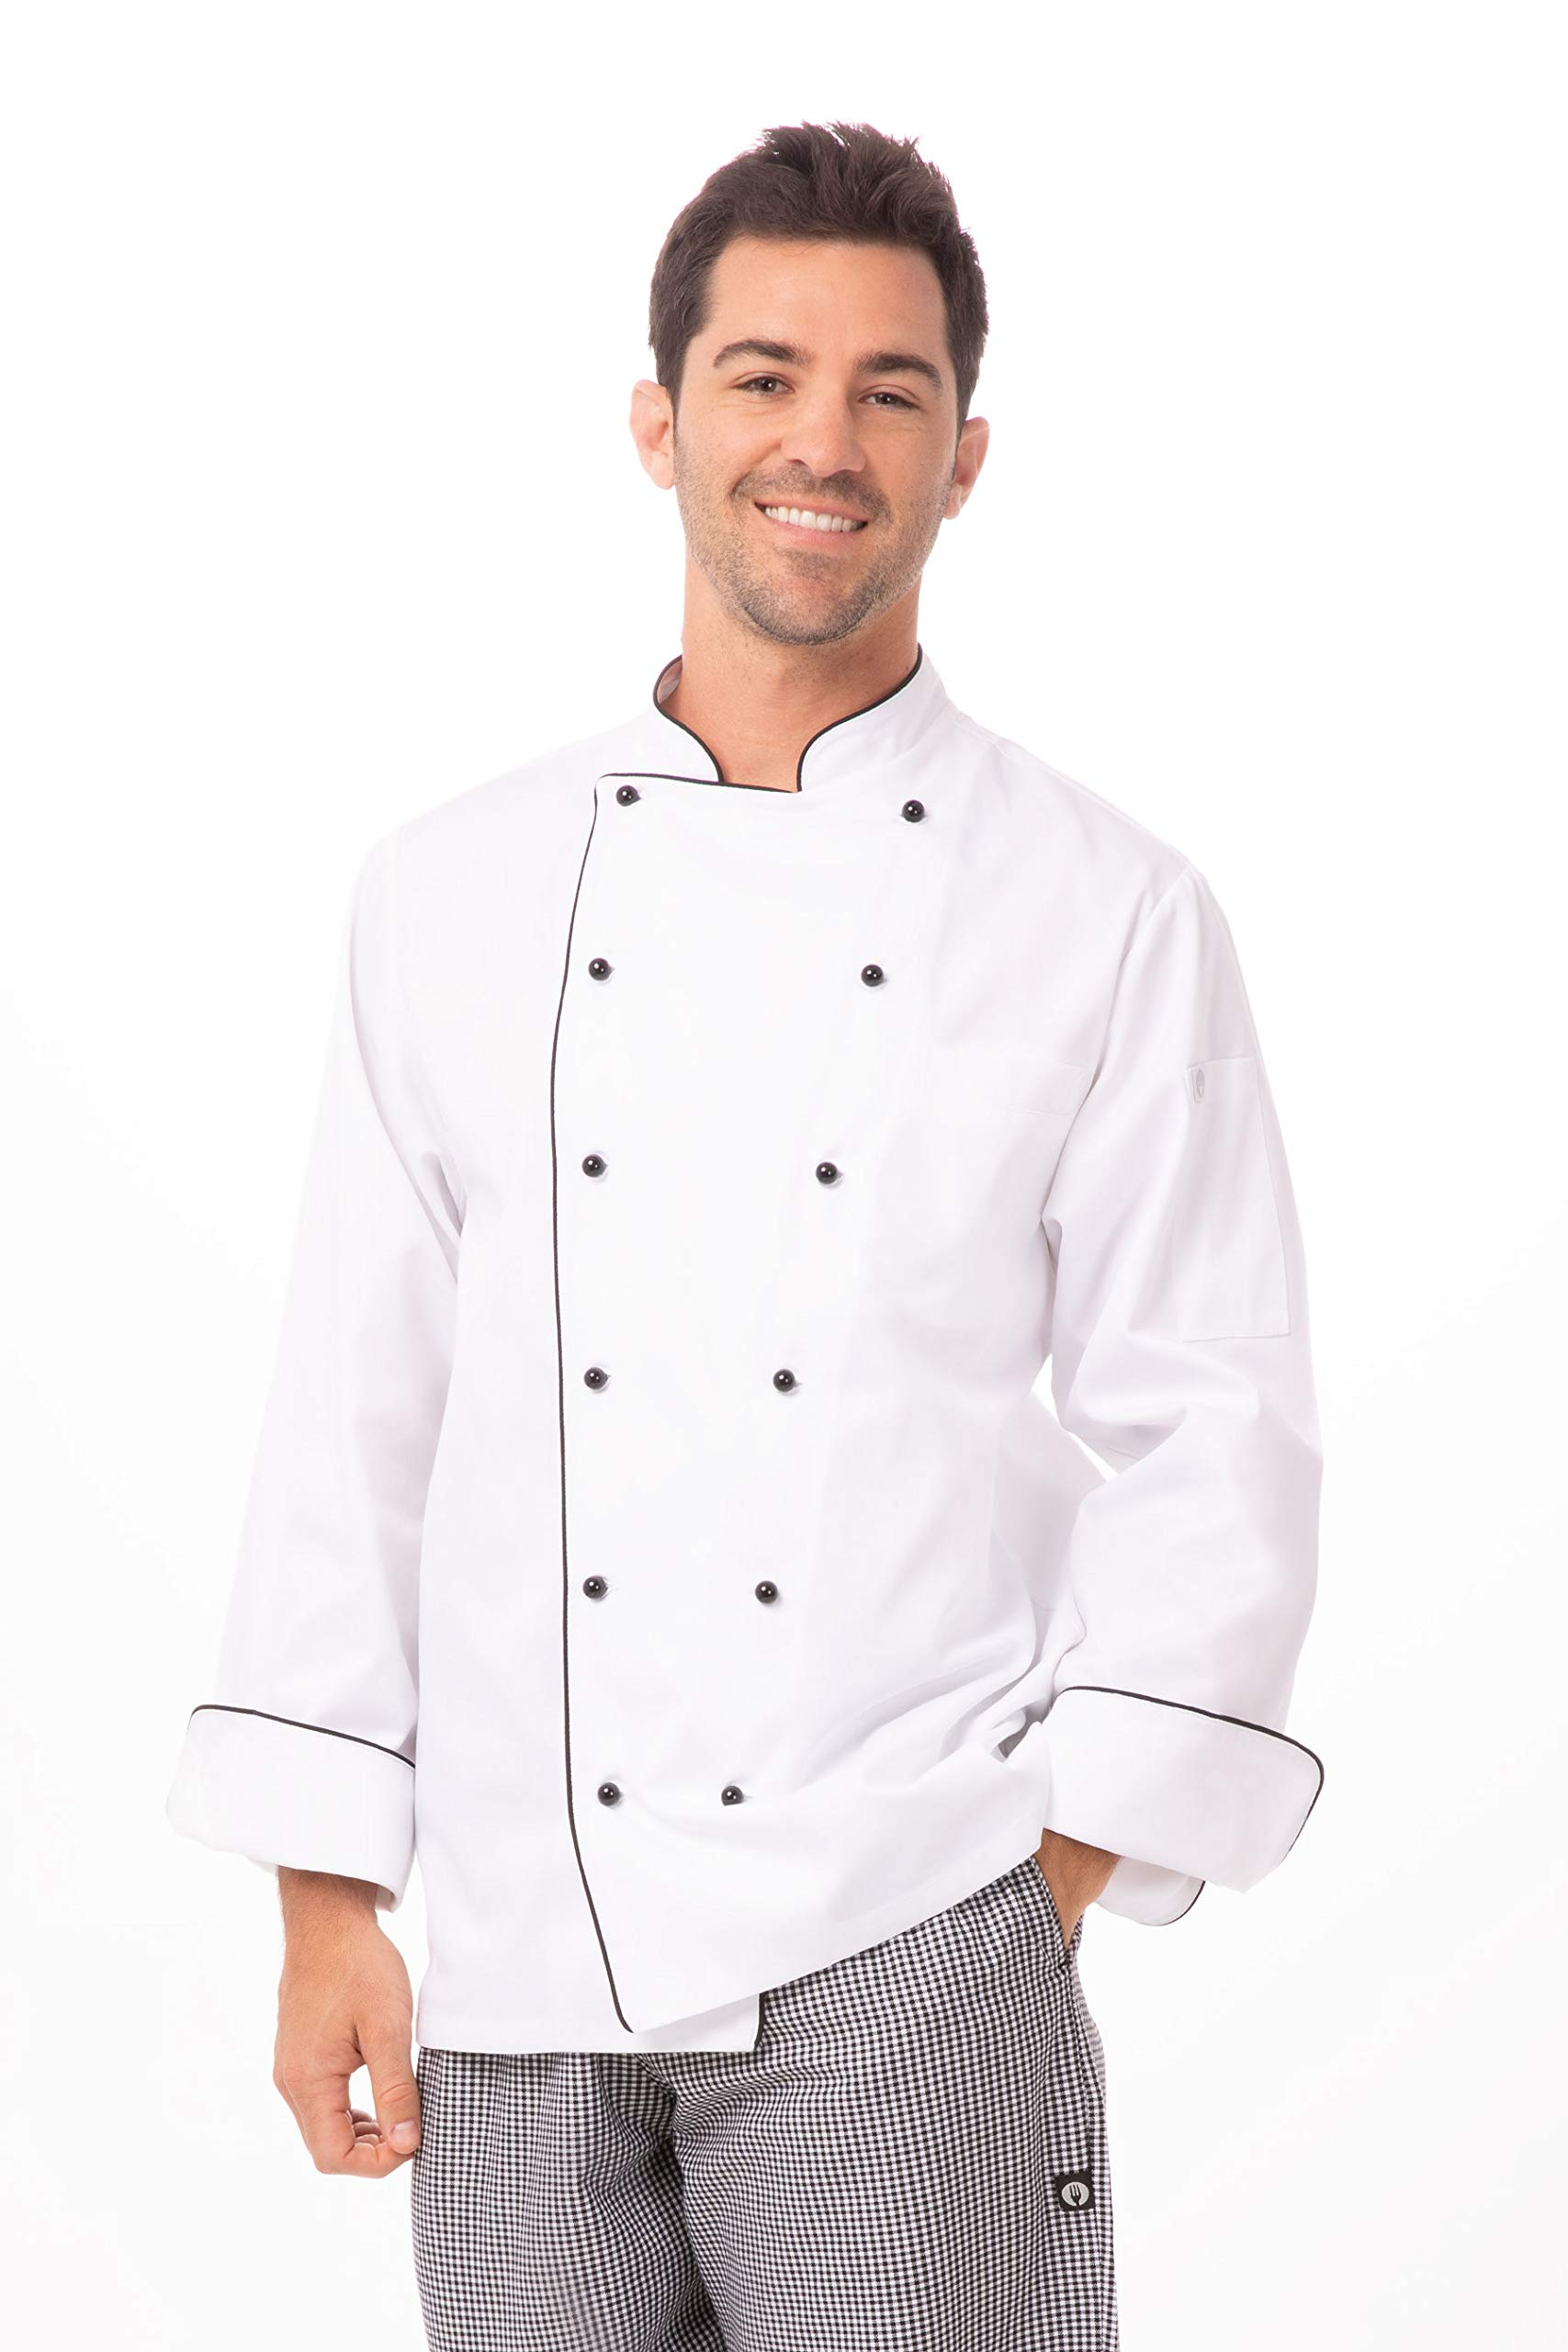 Chef Works Men's Newport Executive Chef Coat, White, 2X-Large by Chef Works